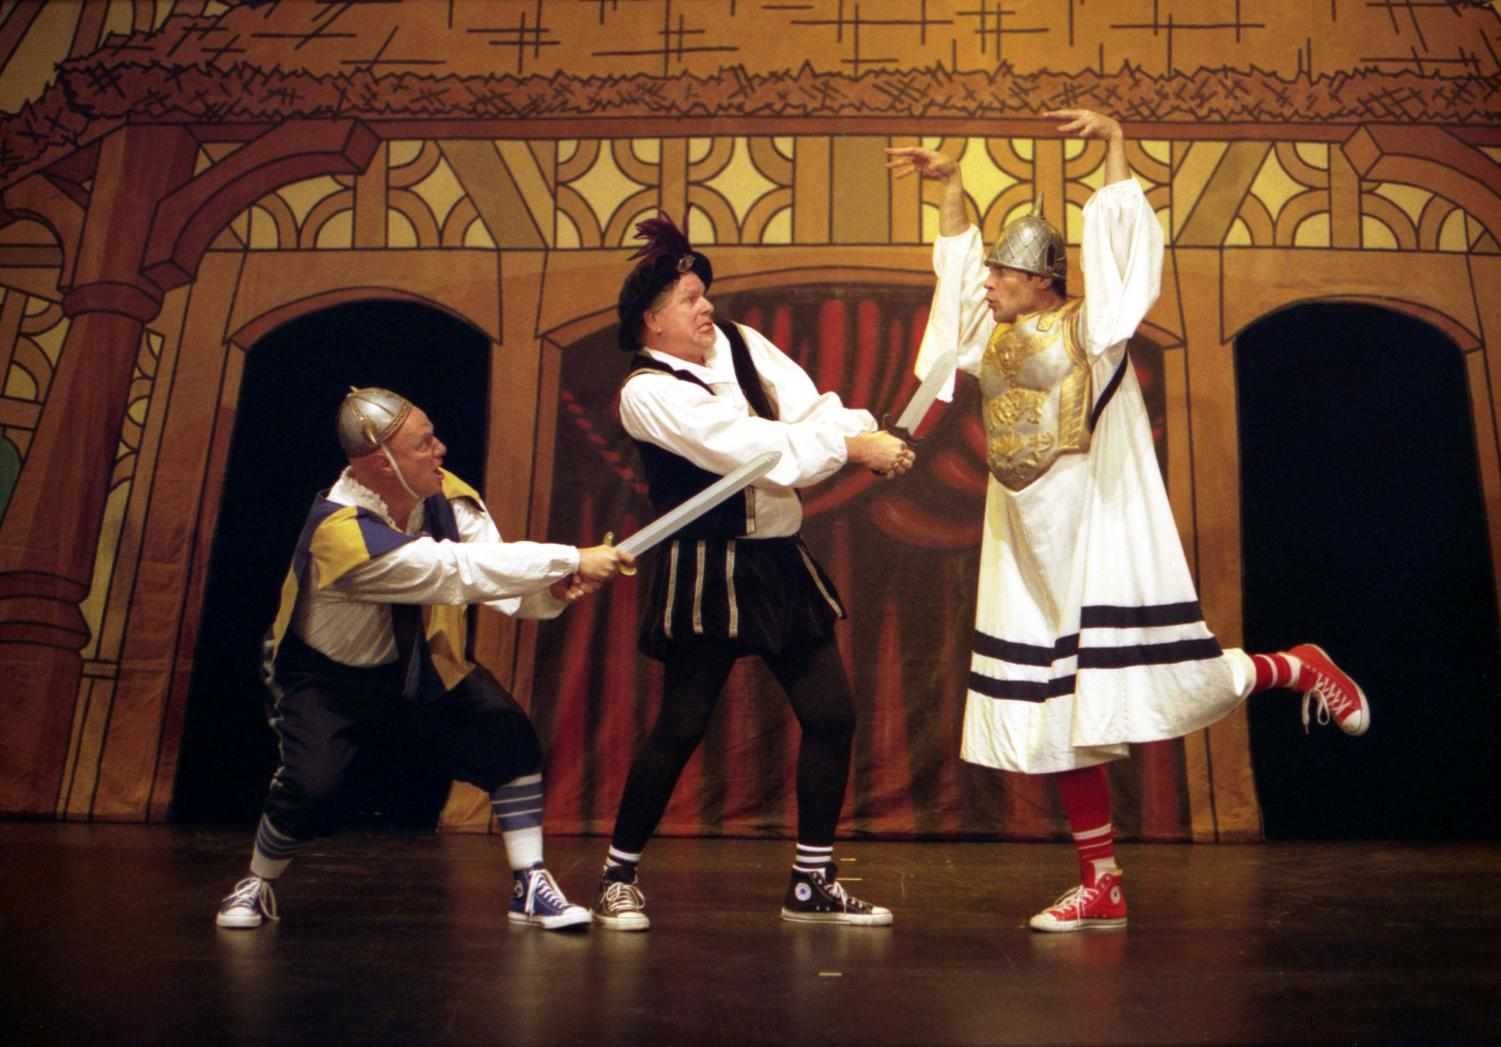 Actors from the Reduced Shakespeare Company, dressed in historically accurate Converse sneakers, perform The Complete Works of William Shakespeare (abridged)